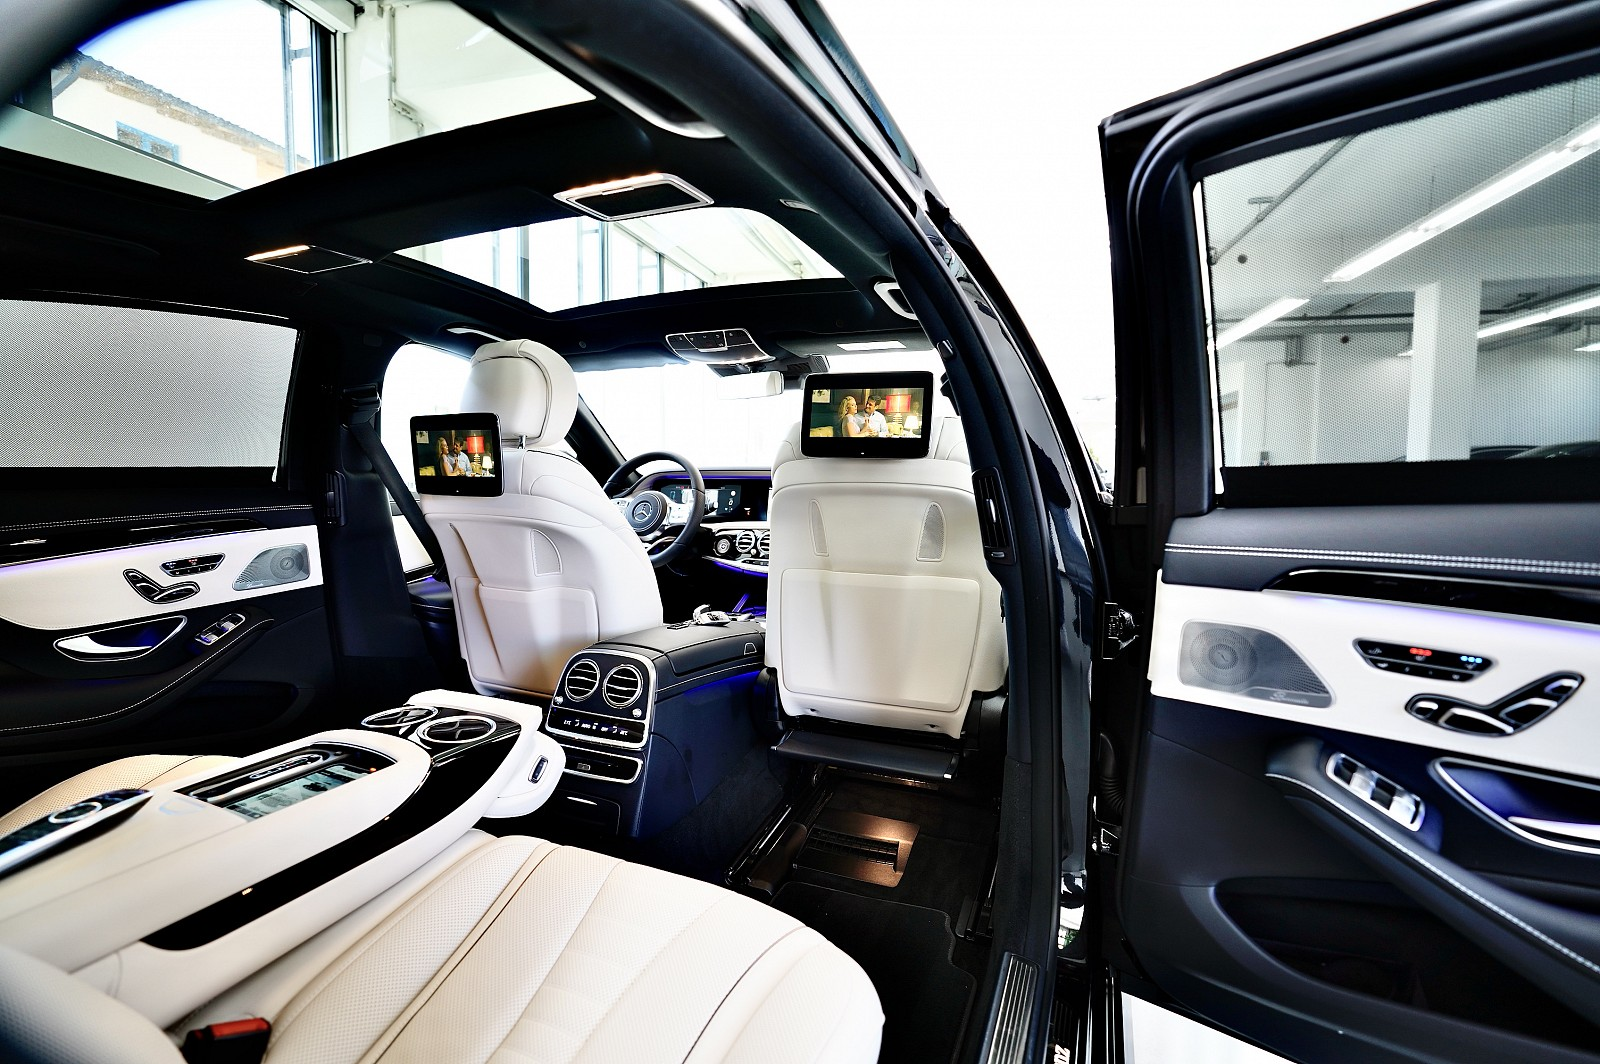 MERCEDES-BENZ S 560 4MATIC LANg-amg CHAUFFEUR PAKET + AMG LINE